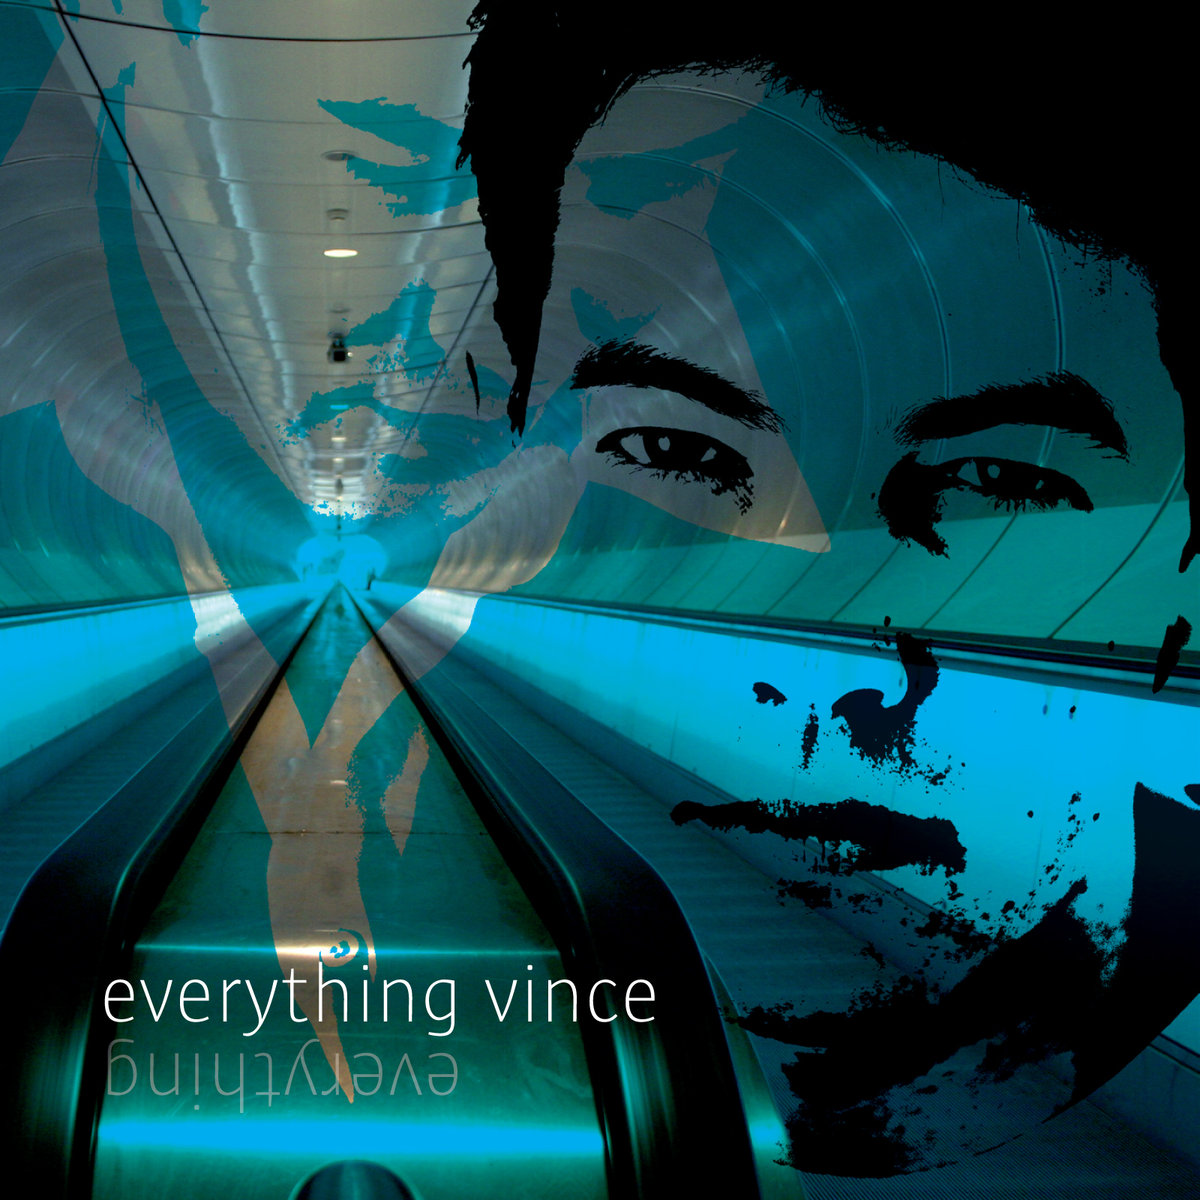 Vince - Fruit @ 'Everything' album (pop, pop punk)